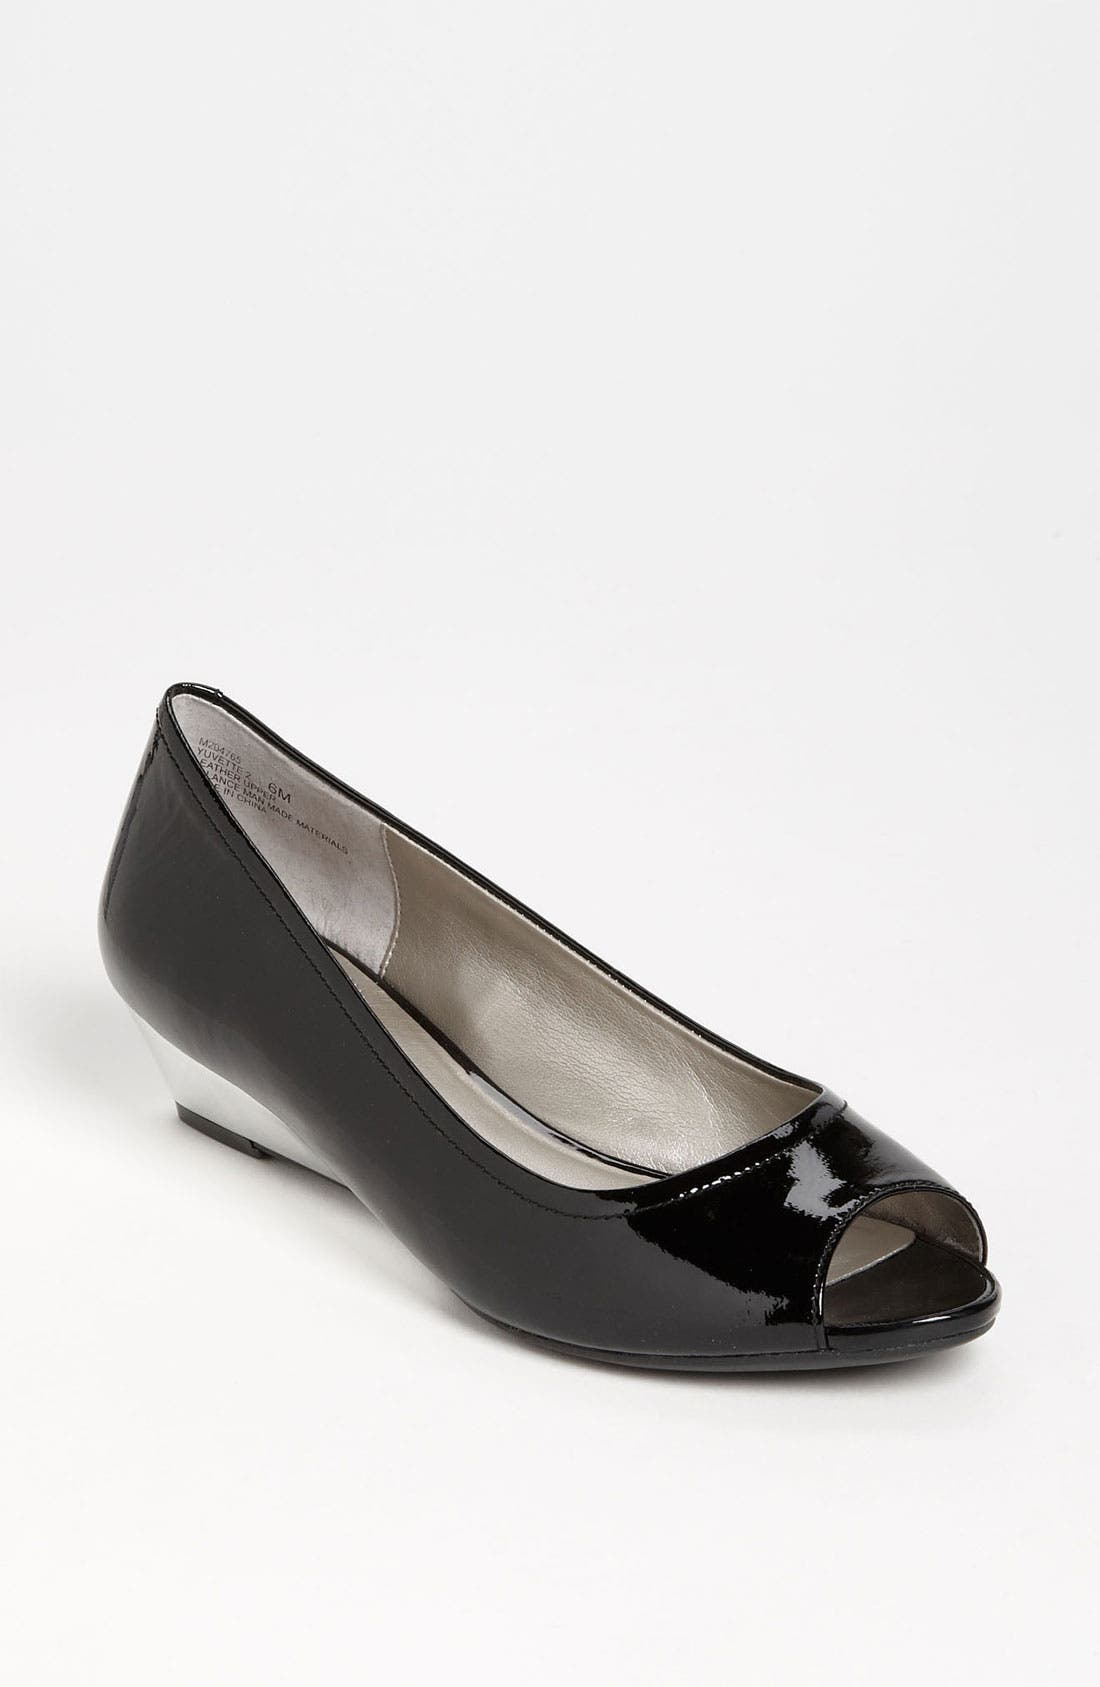 'Yuvette' Pump,                             Main thumbnail 1, color,                             Black